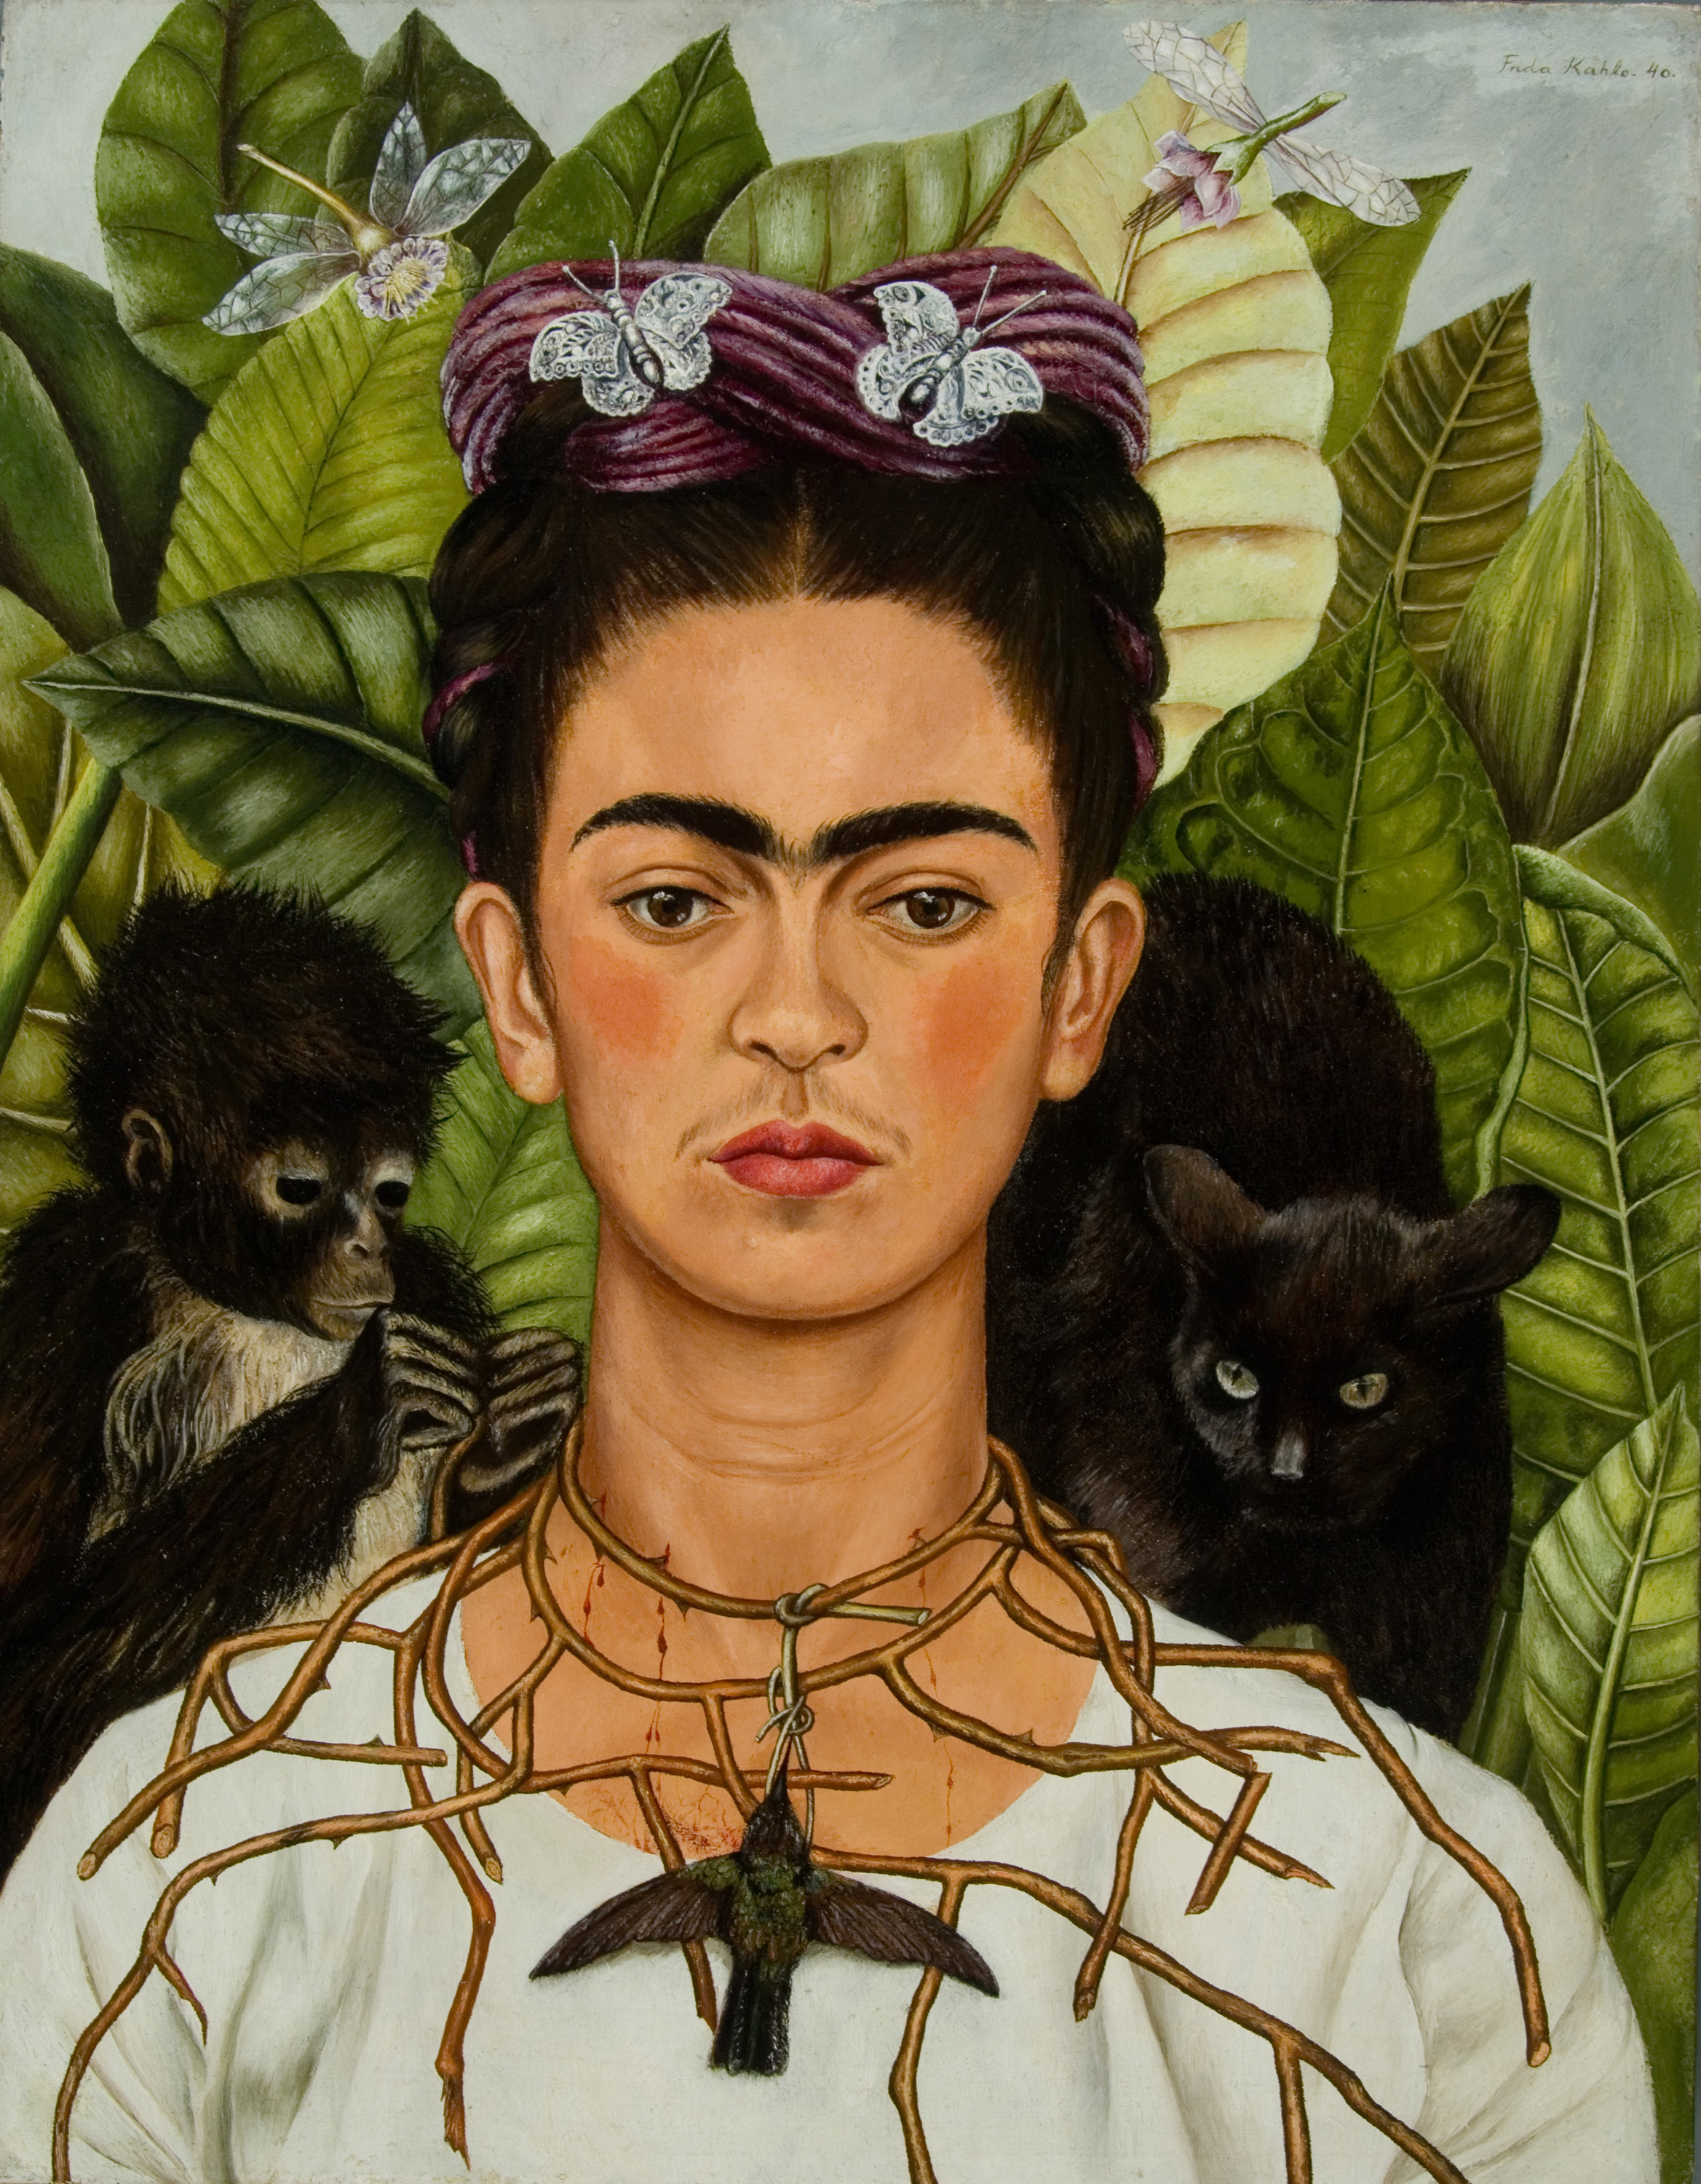 Self-Portrait with Thorn Necklace and Hummingbird, 1940 — Frida Kahlo